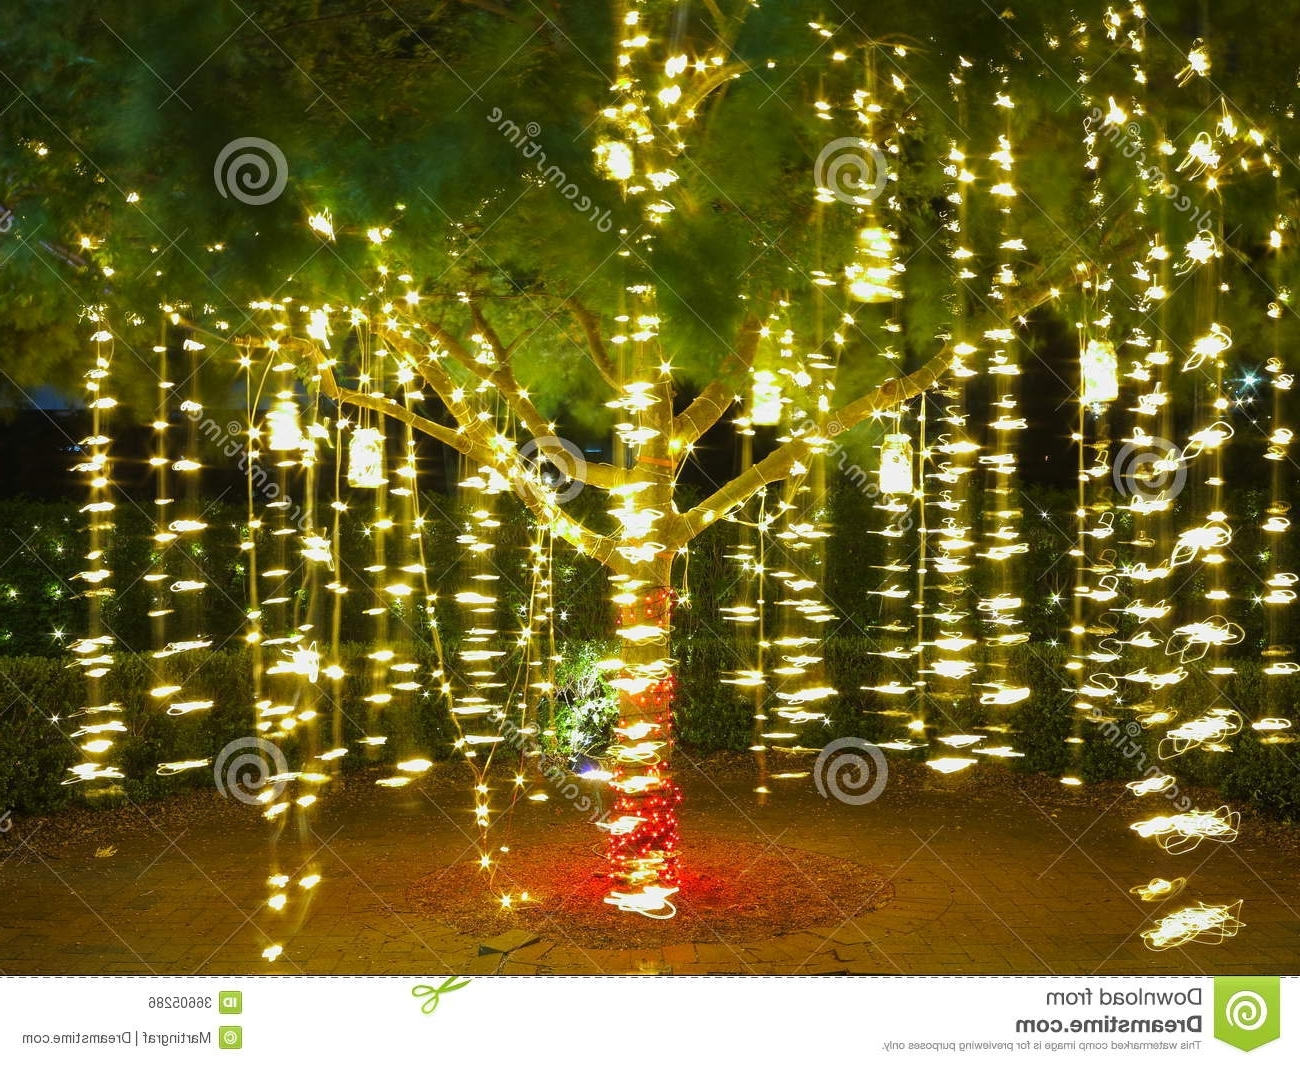 Holiday Lights In Tree / Summer Night Stock Photo – Image Of Festive Regarding Most Recent Hanging Outdoor Christmas Lights In Trees (View 16 of 20)